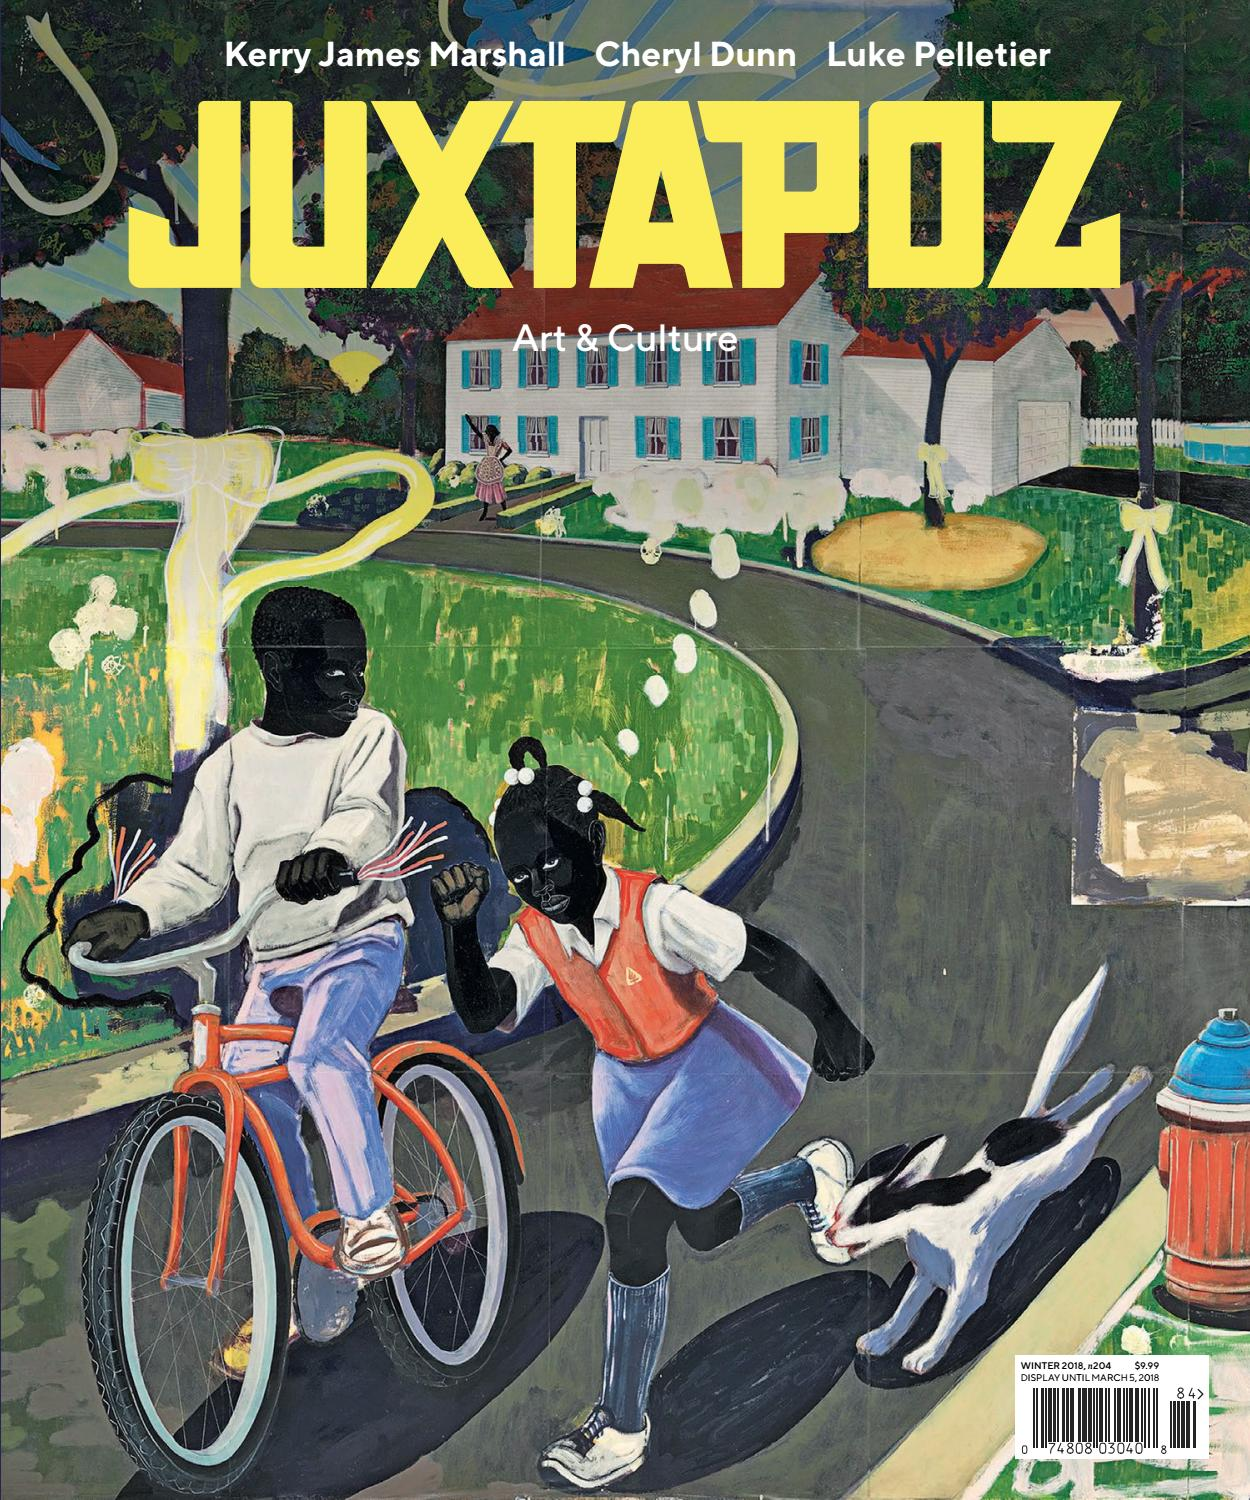 Juxtapoz art amp amp culture january 2018 by Lucoment - issuu 2a8436f7aece4